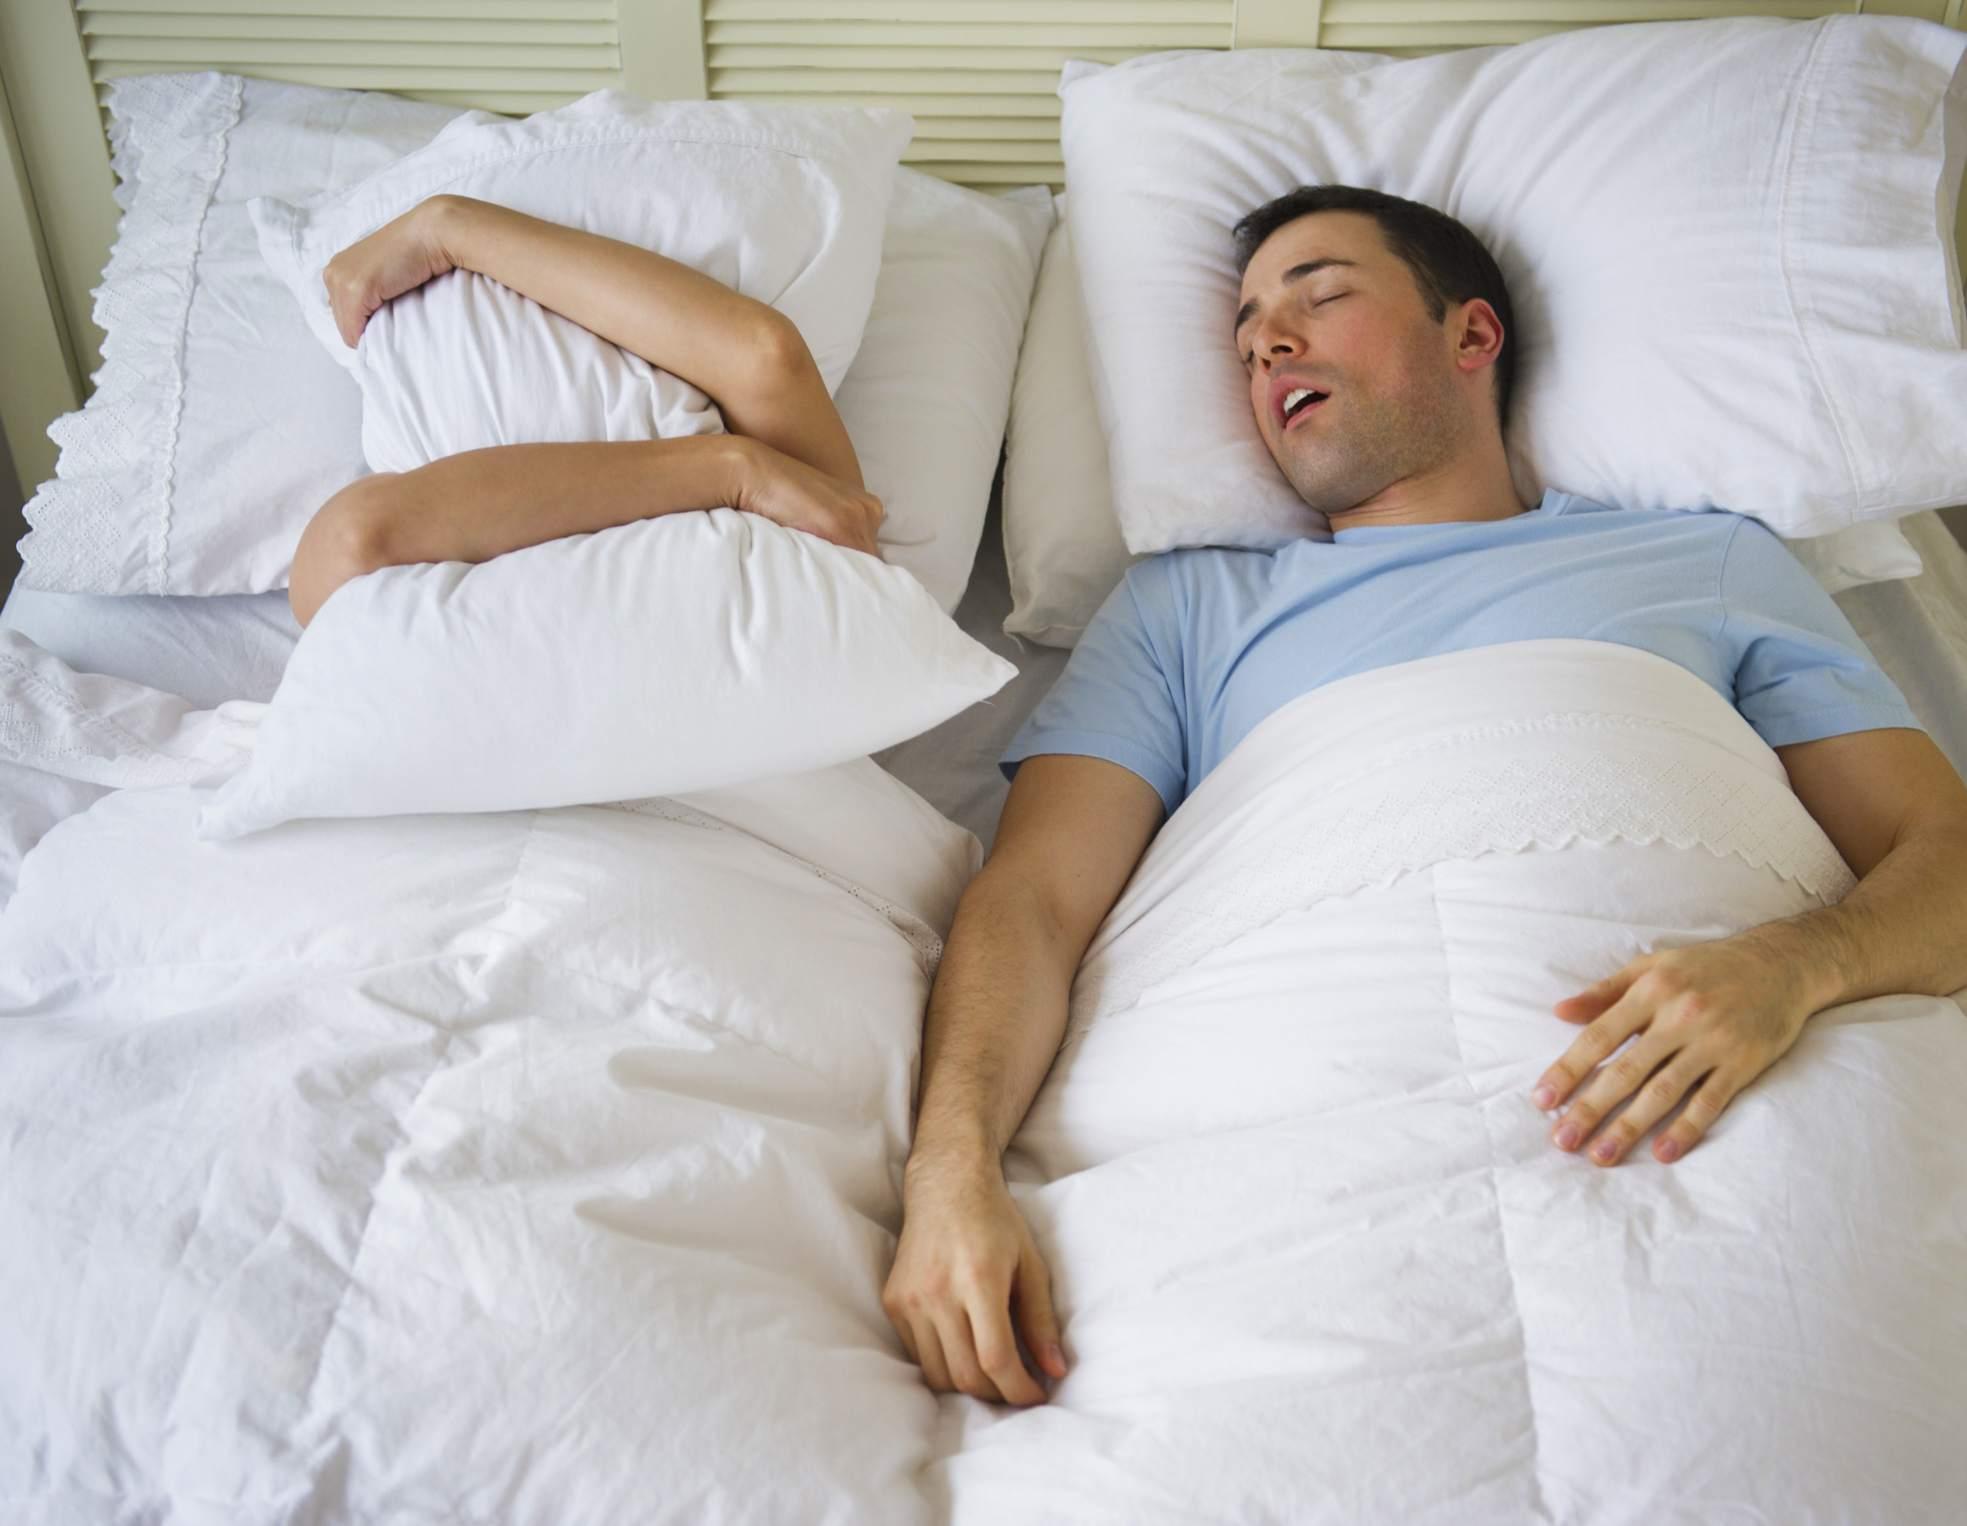 Man snoring loudly while his partner covers her head in a pillow